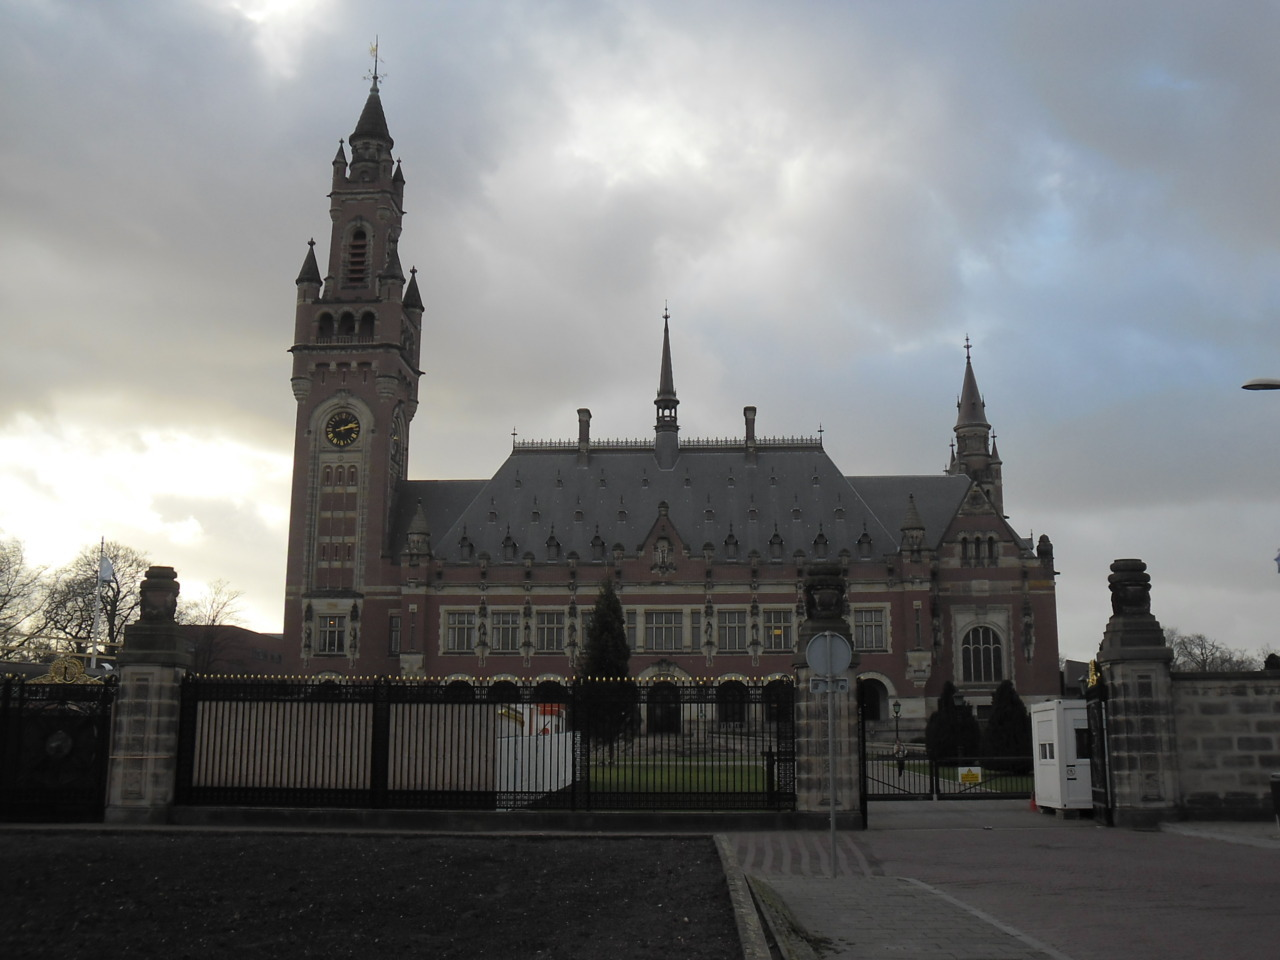 U.N. Peace Palace in The Hague (Den Haag), Netherlands. Photo taken by me, 7 December 2011.